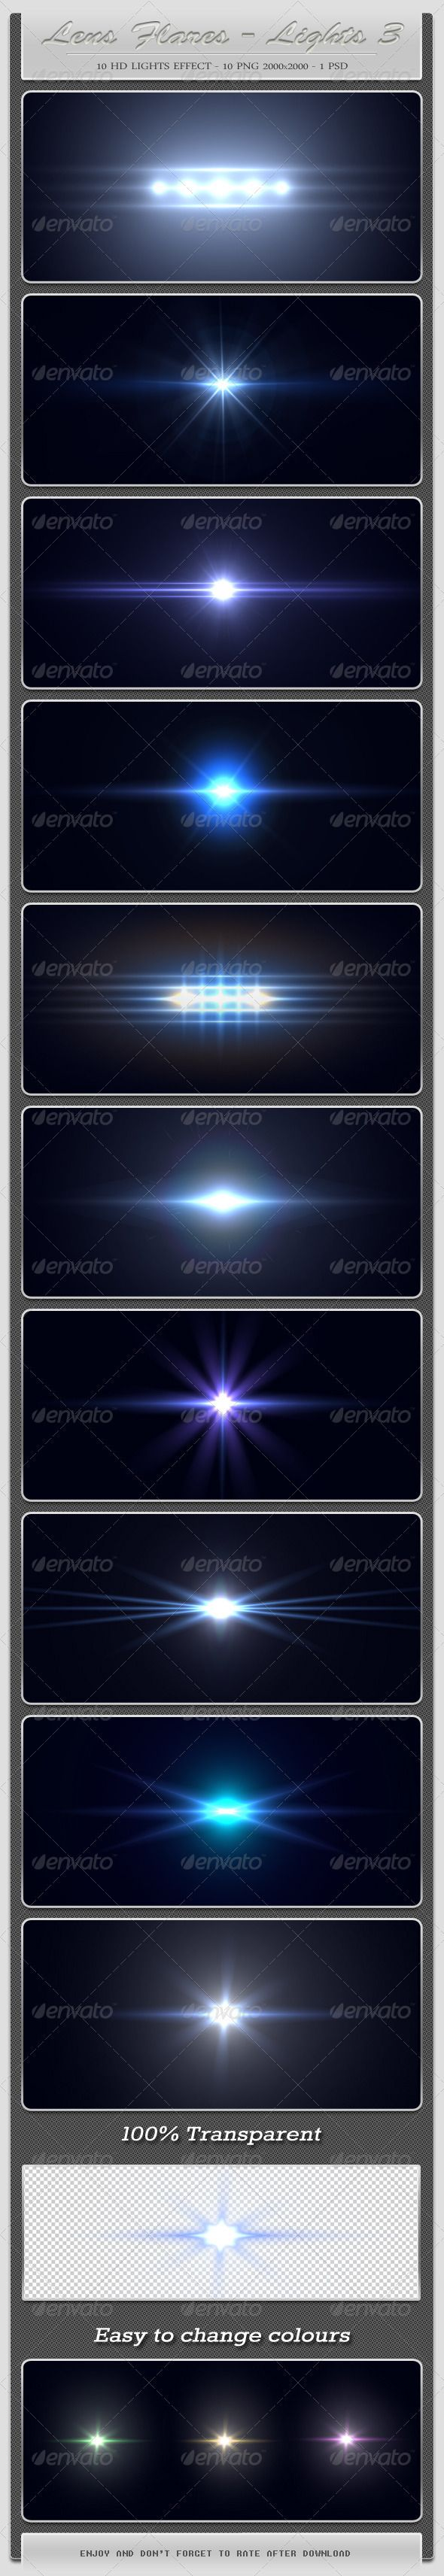 how to make lense flare effects